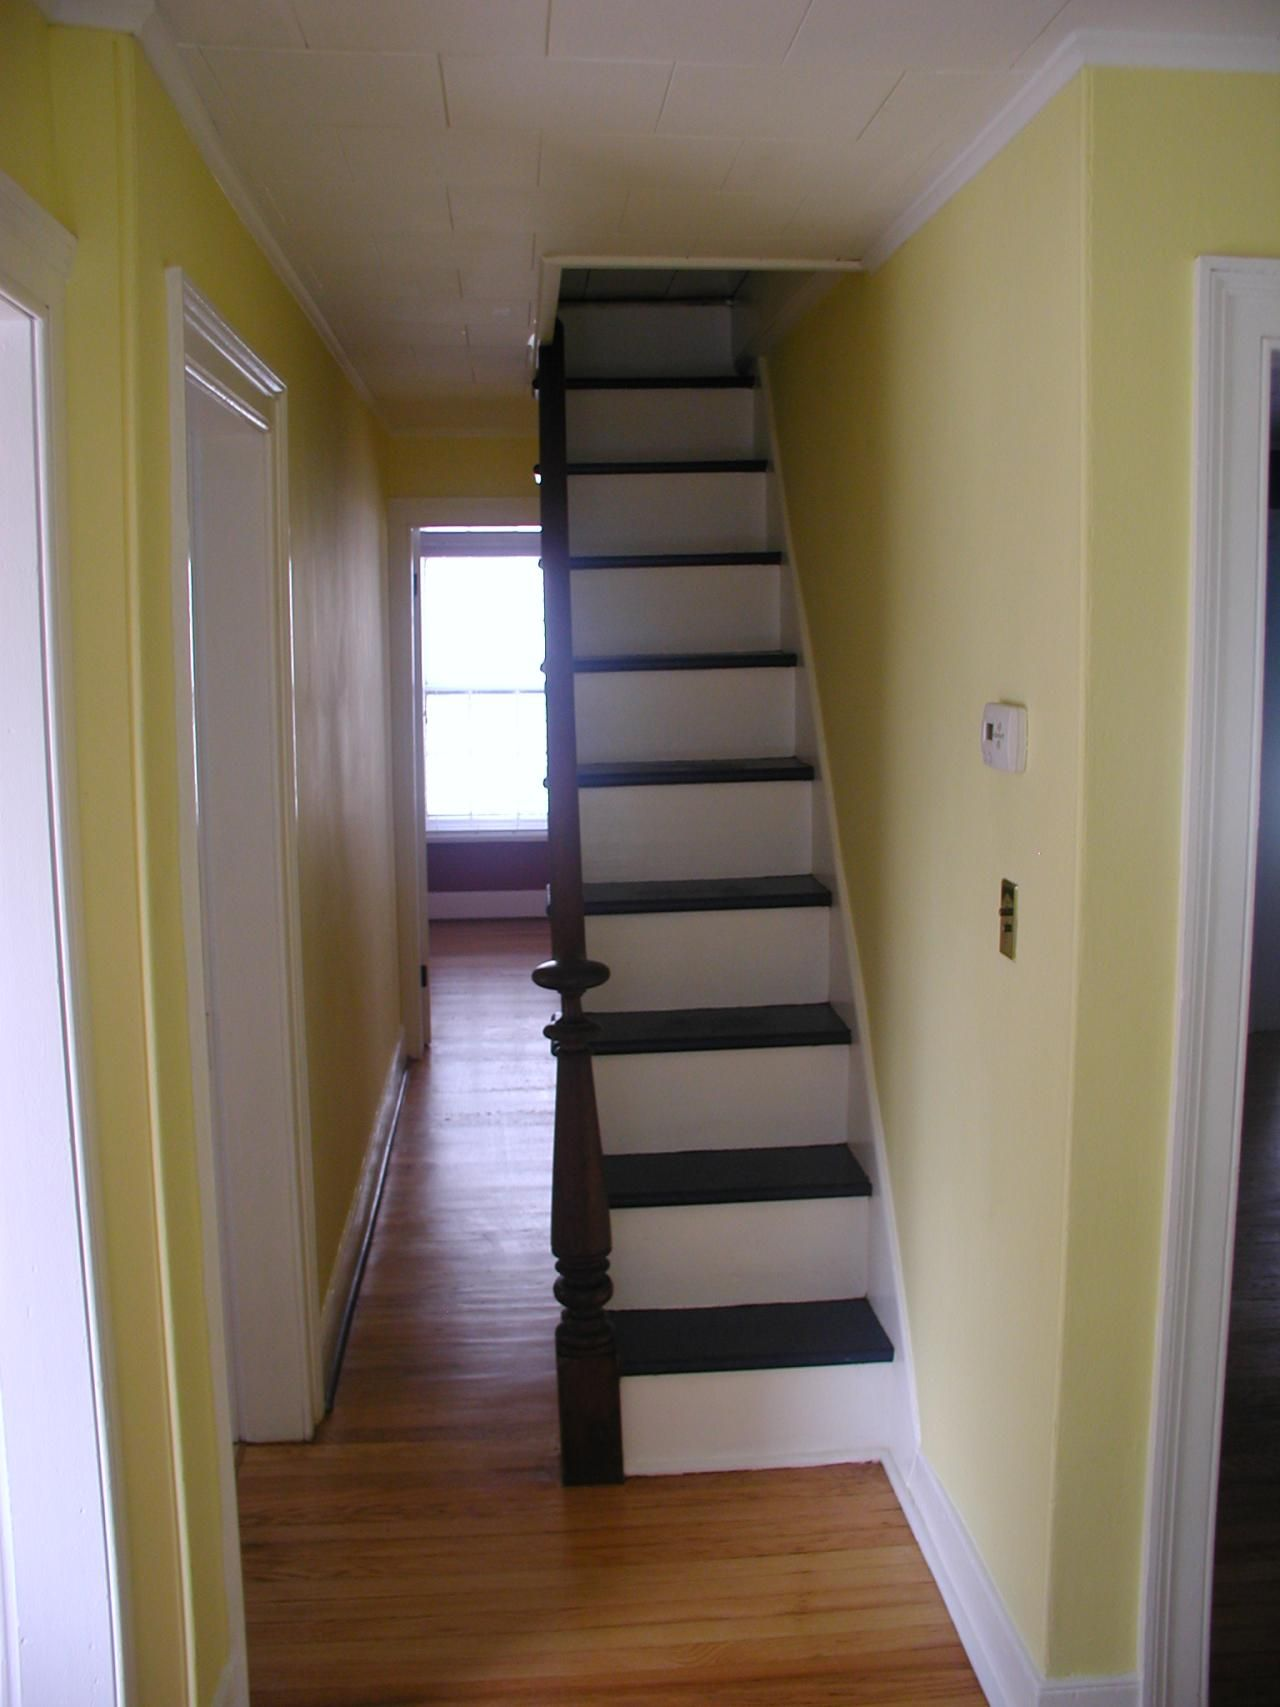 Stair Options For Small Spaces Staircase For Small Spaces Home Small Footprint